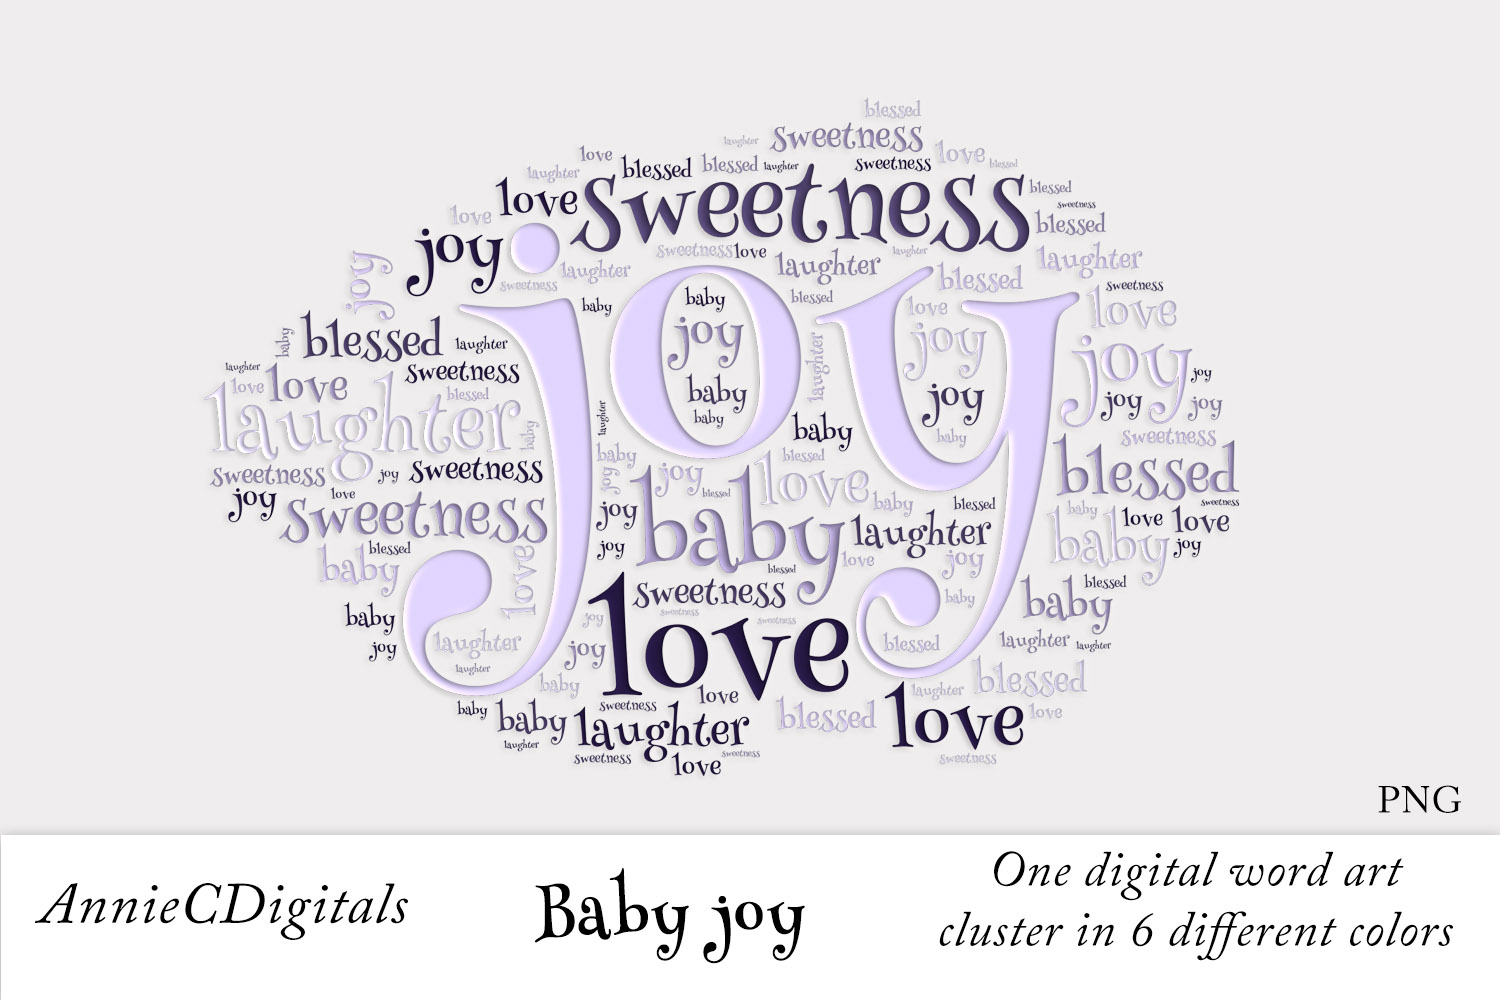 Download Free Baby Joy Word Art Cluster Graphic By Anniecdigitals Creative for Cricut Explore, Silhouette and other cutting machines.